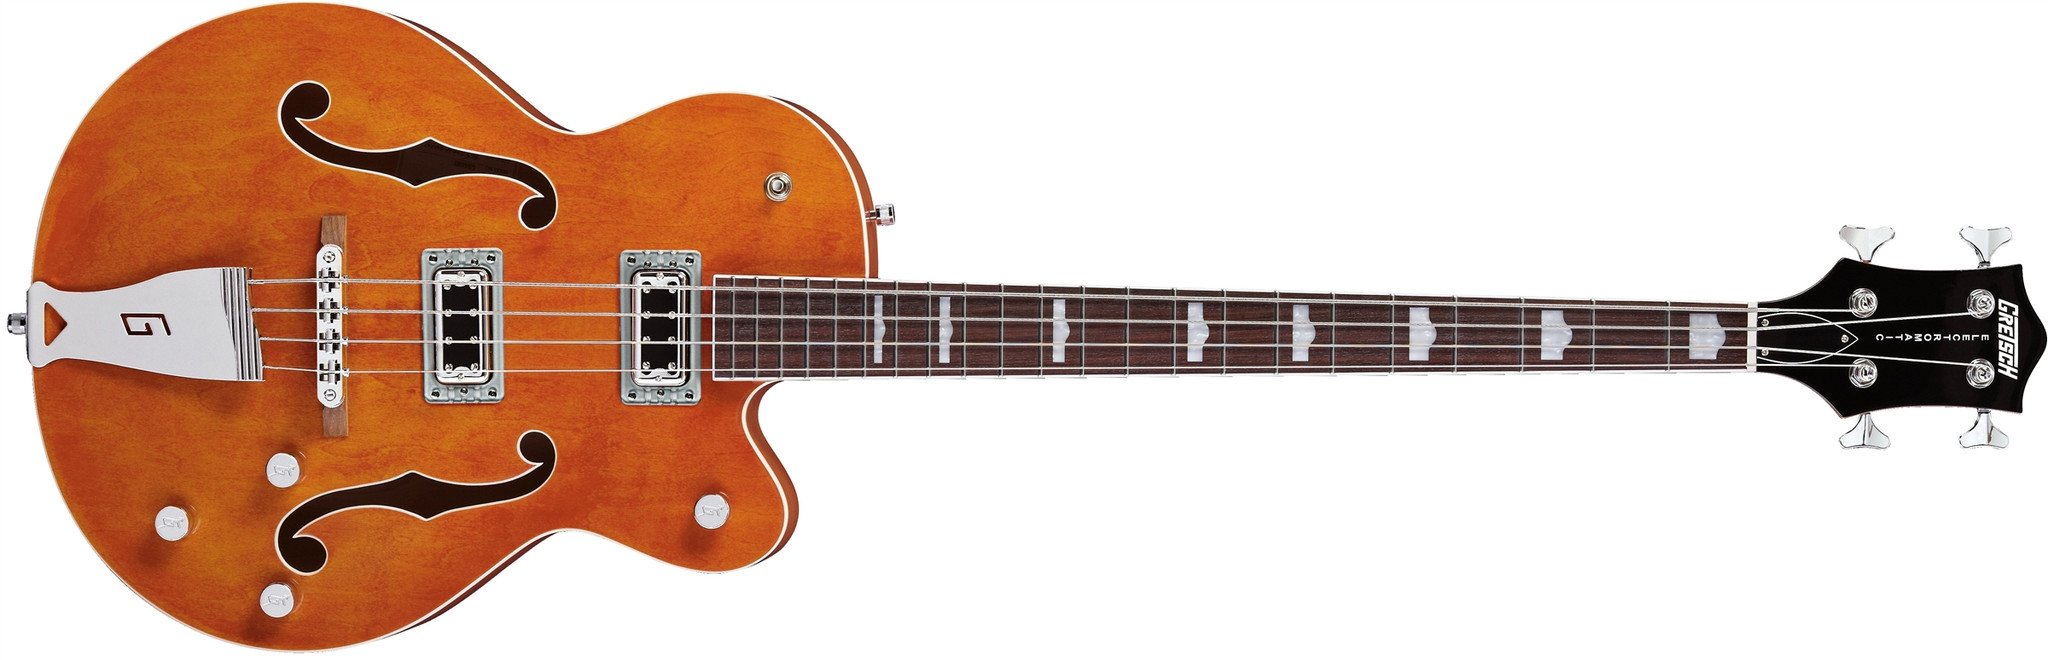 GRETSCH-G5440LSB-Electromatic-Hollow-Body-34-Long-Scale-Bass-RW-Orange-2518000512-sku-23409